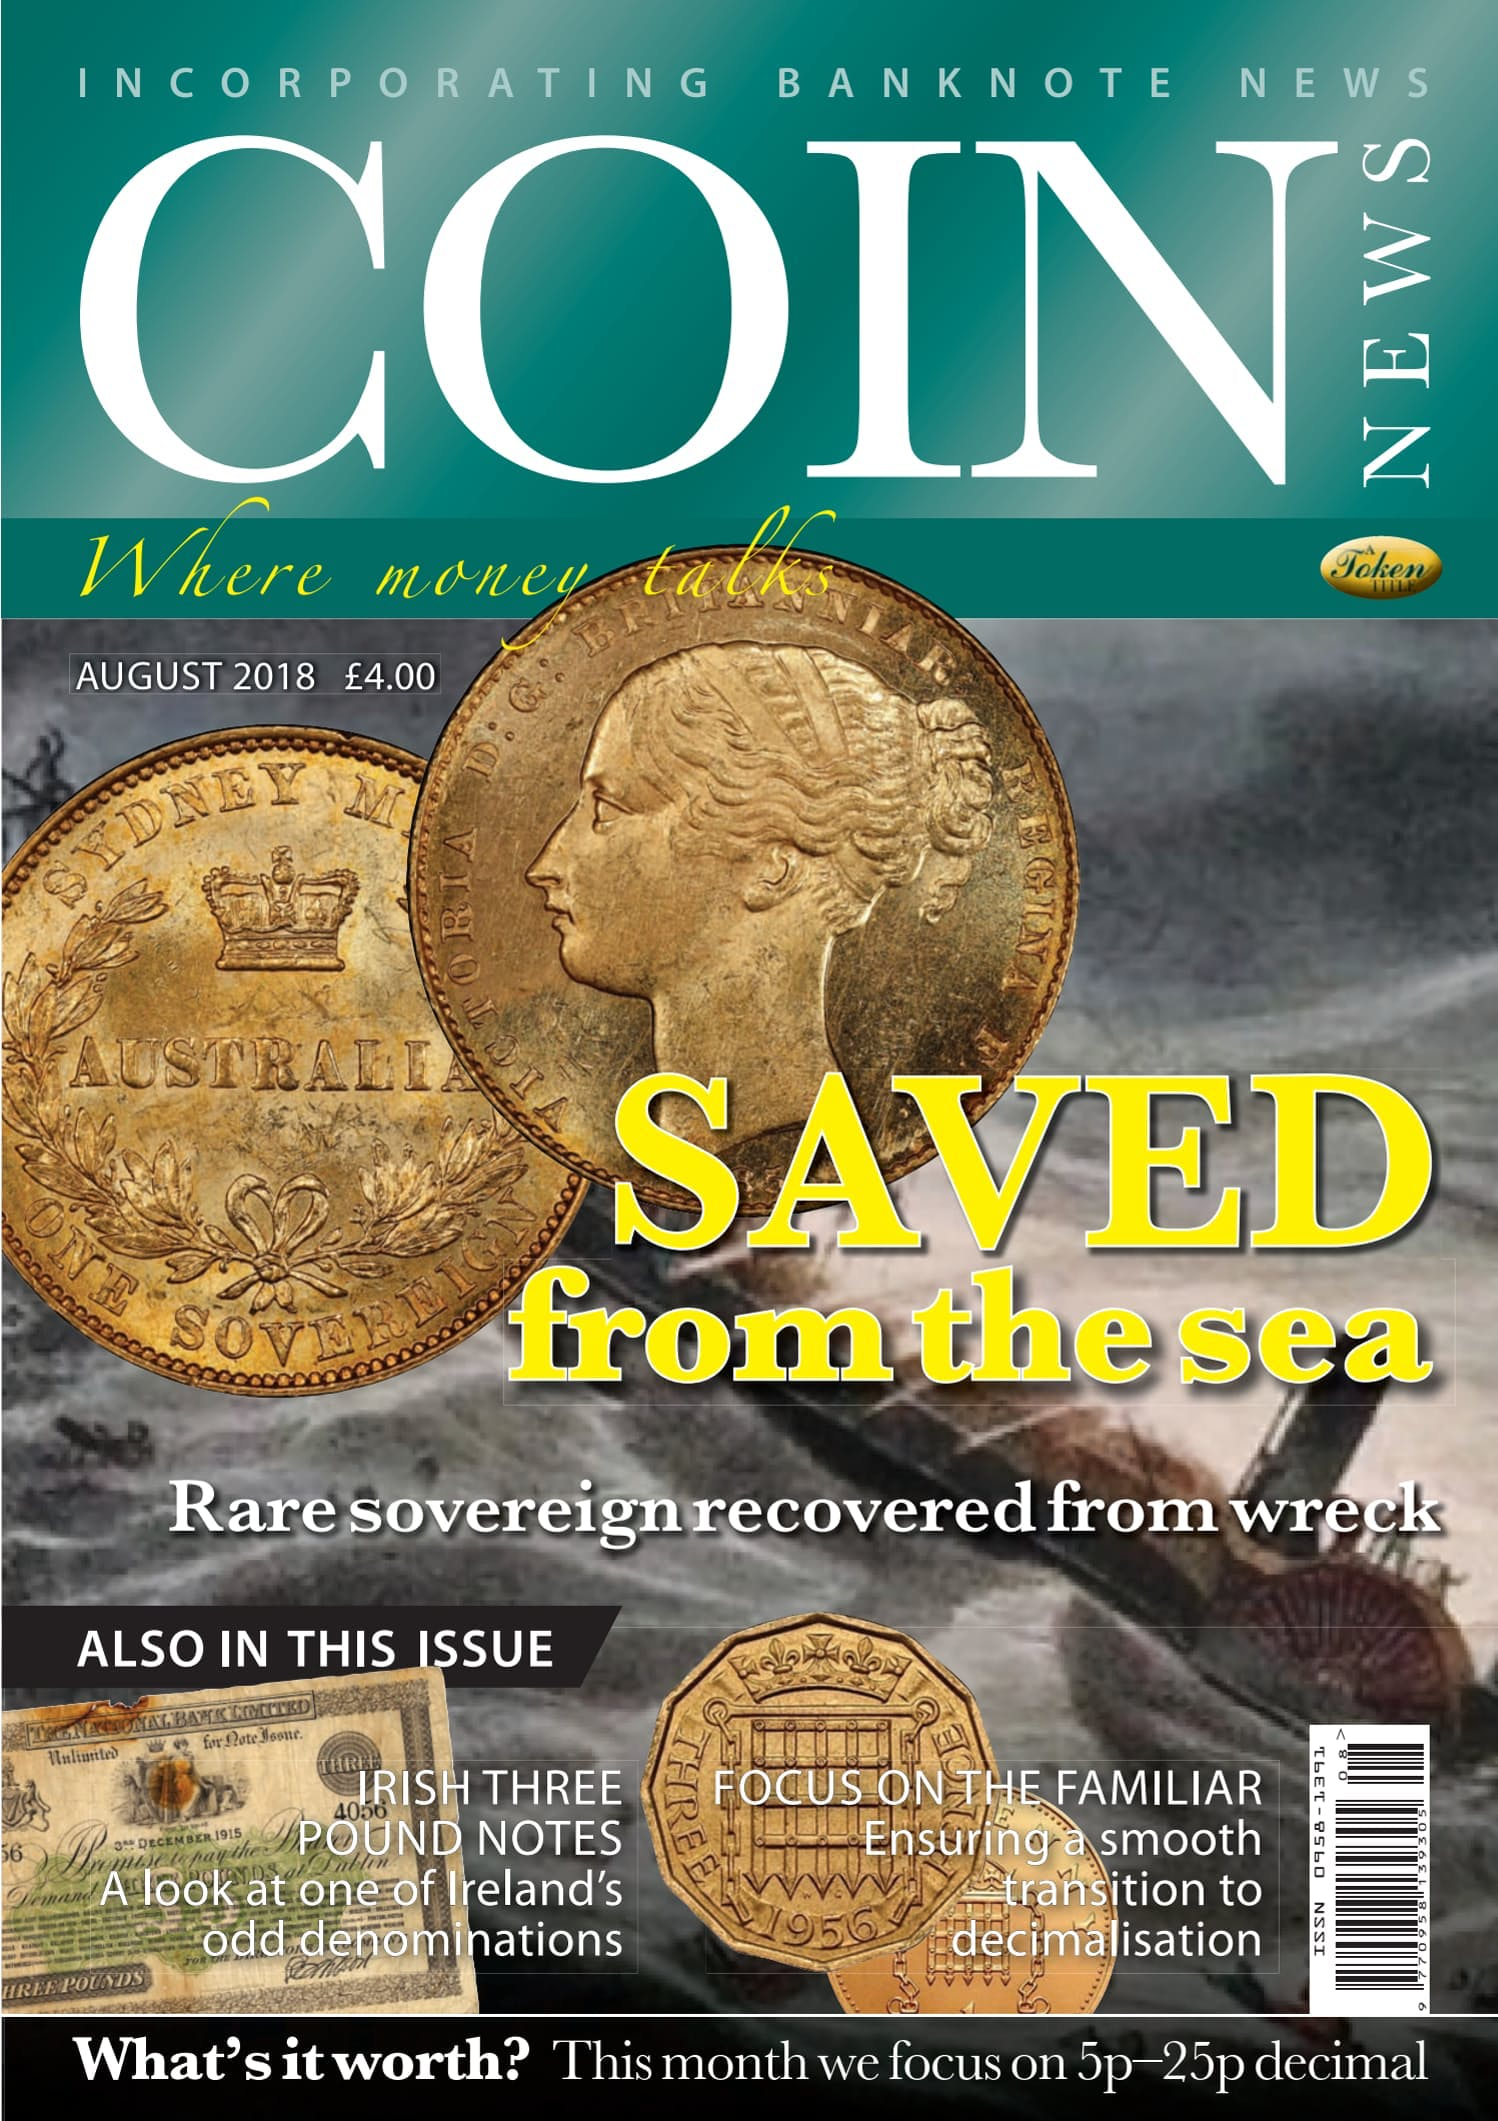 The front cover of Coin News, Volume 55, Number 8, August 2018